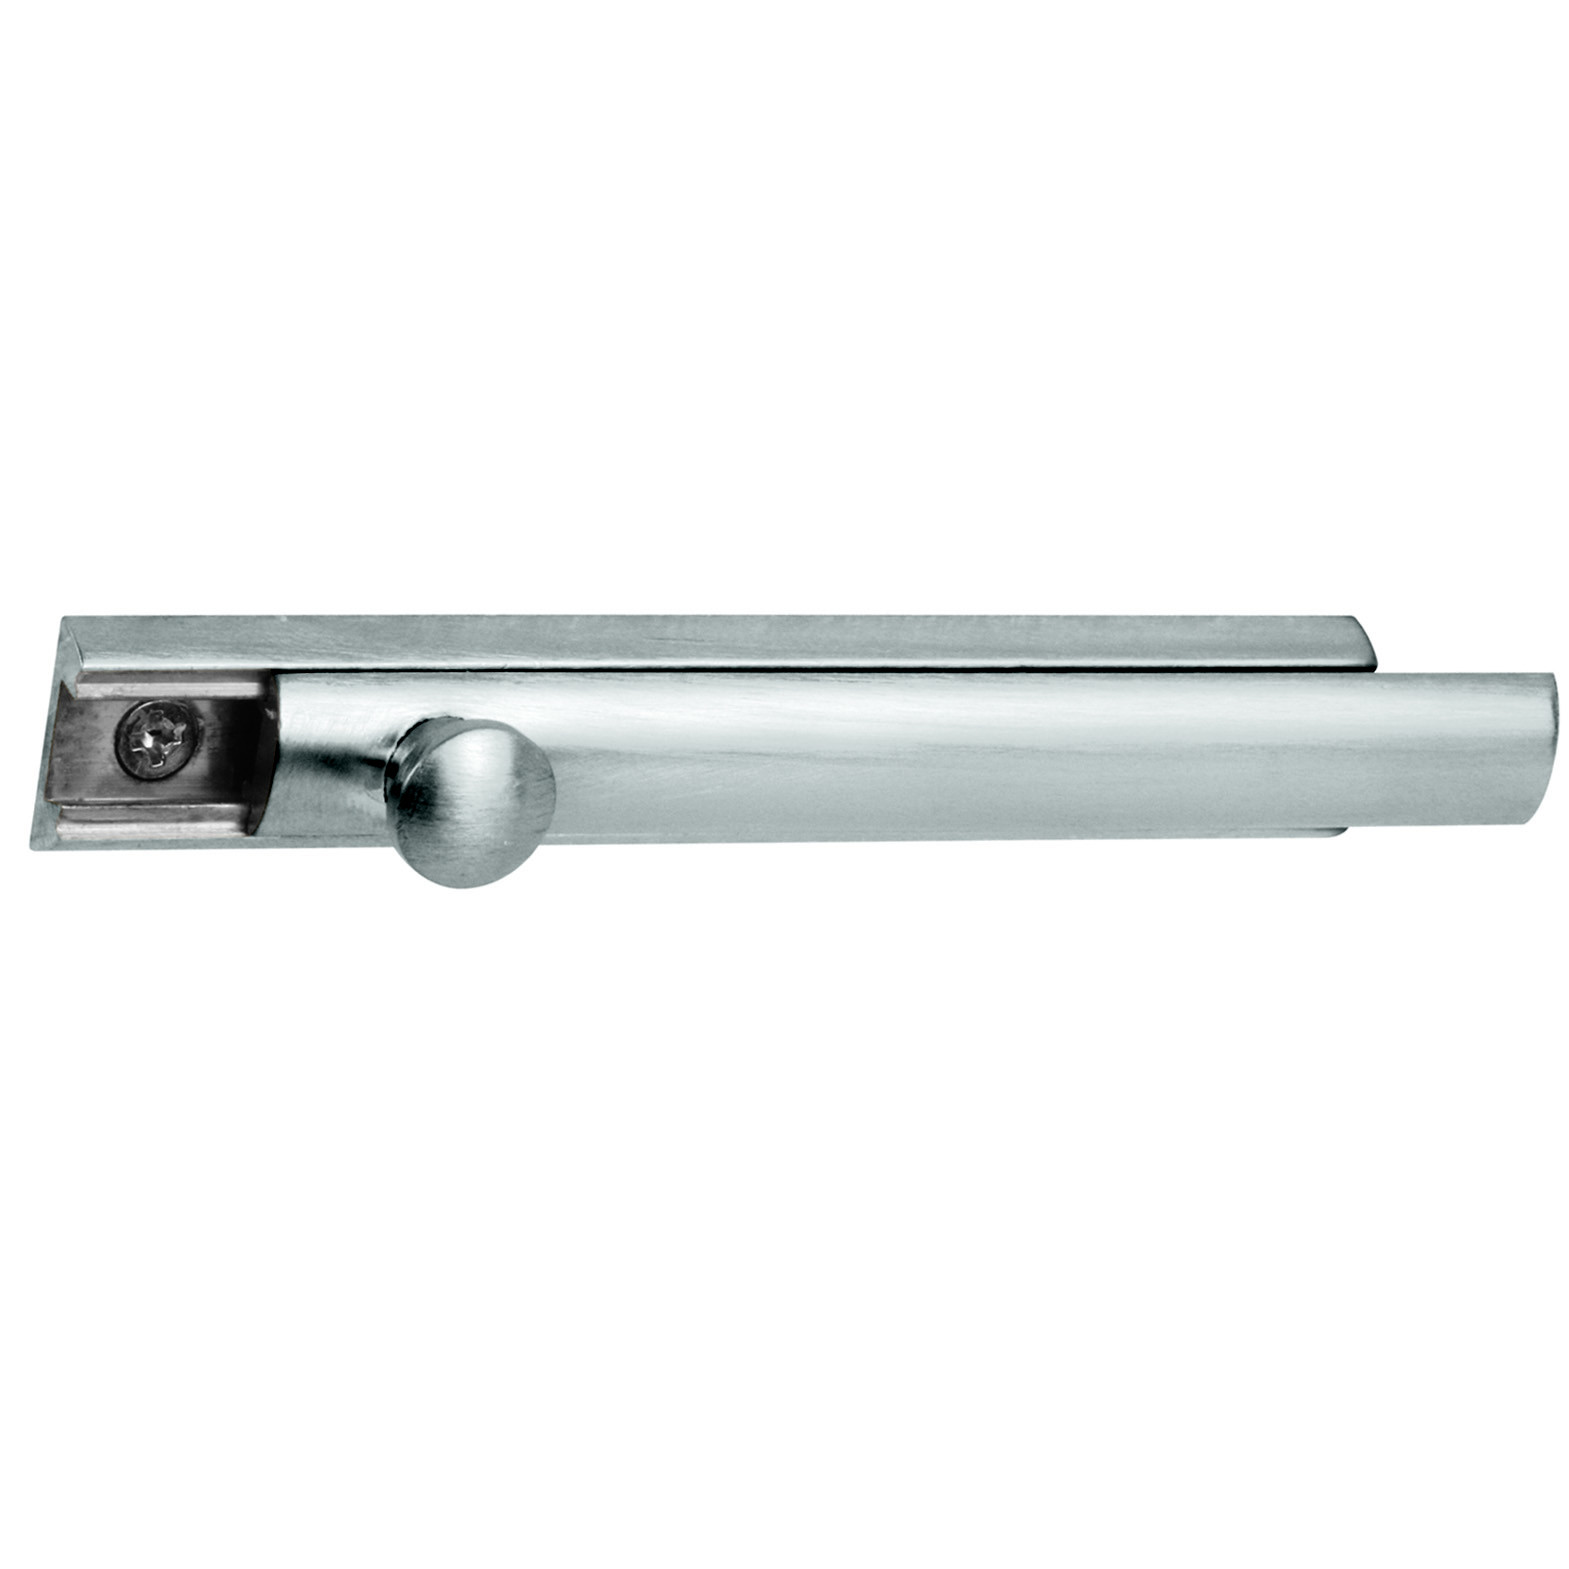 Picture of: Prime Line U10306 Surface Bolt 4 Inch Satin Nickel 049793103062 1